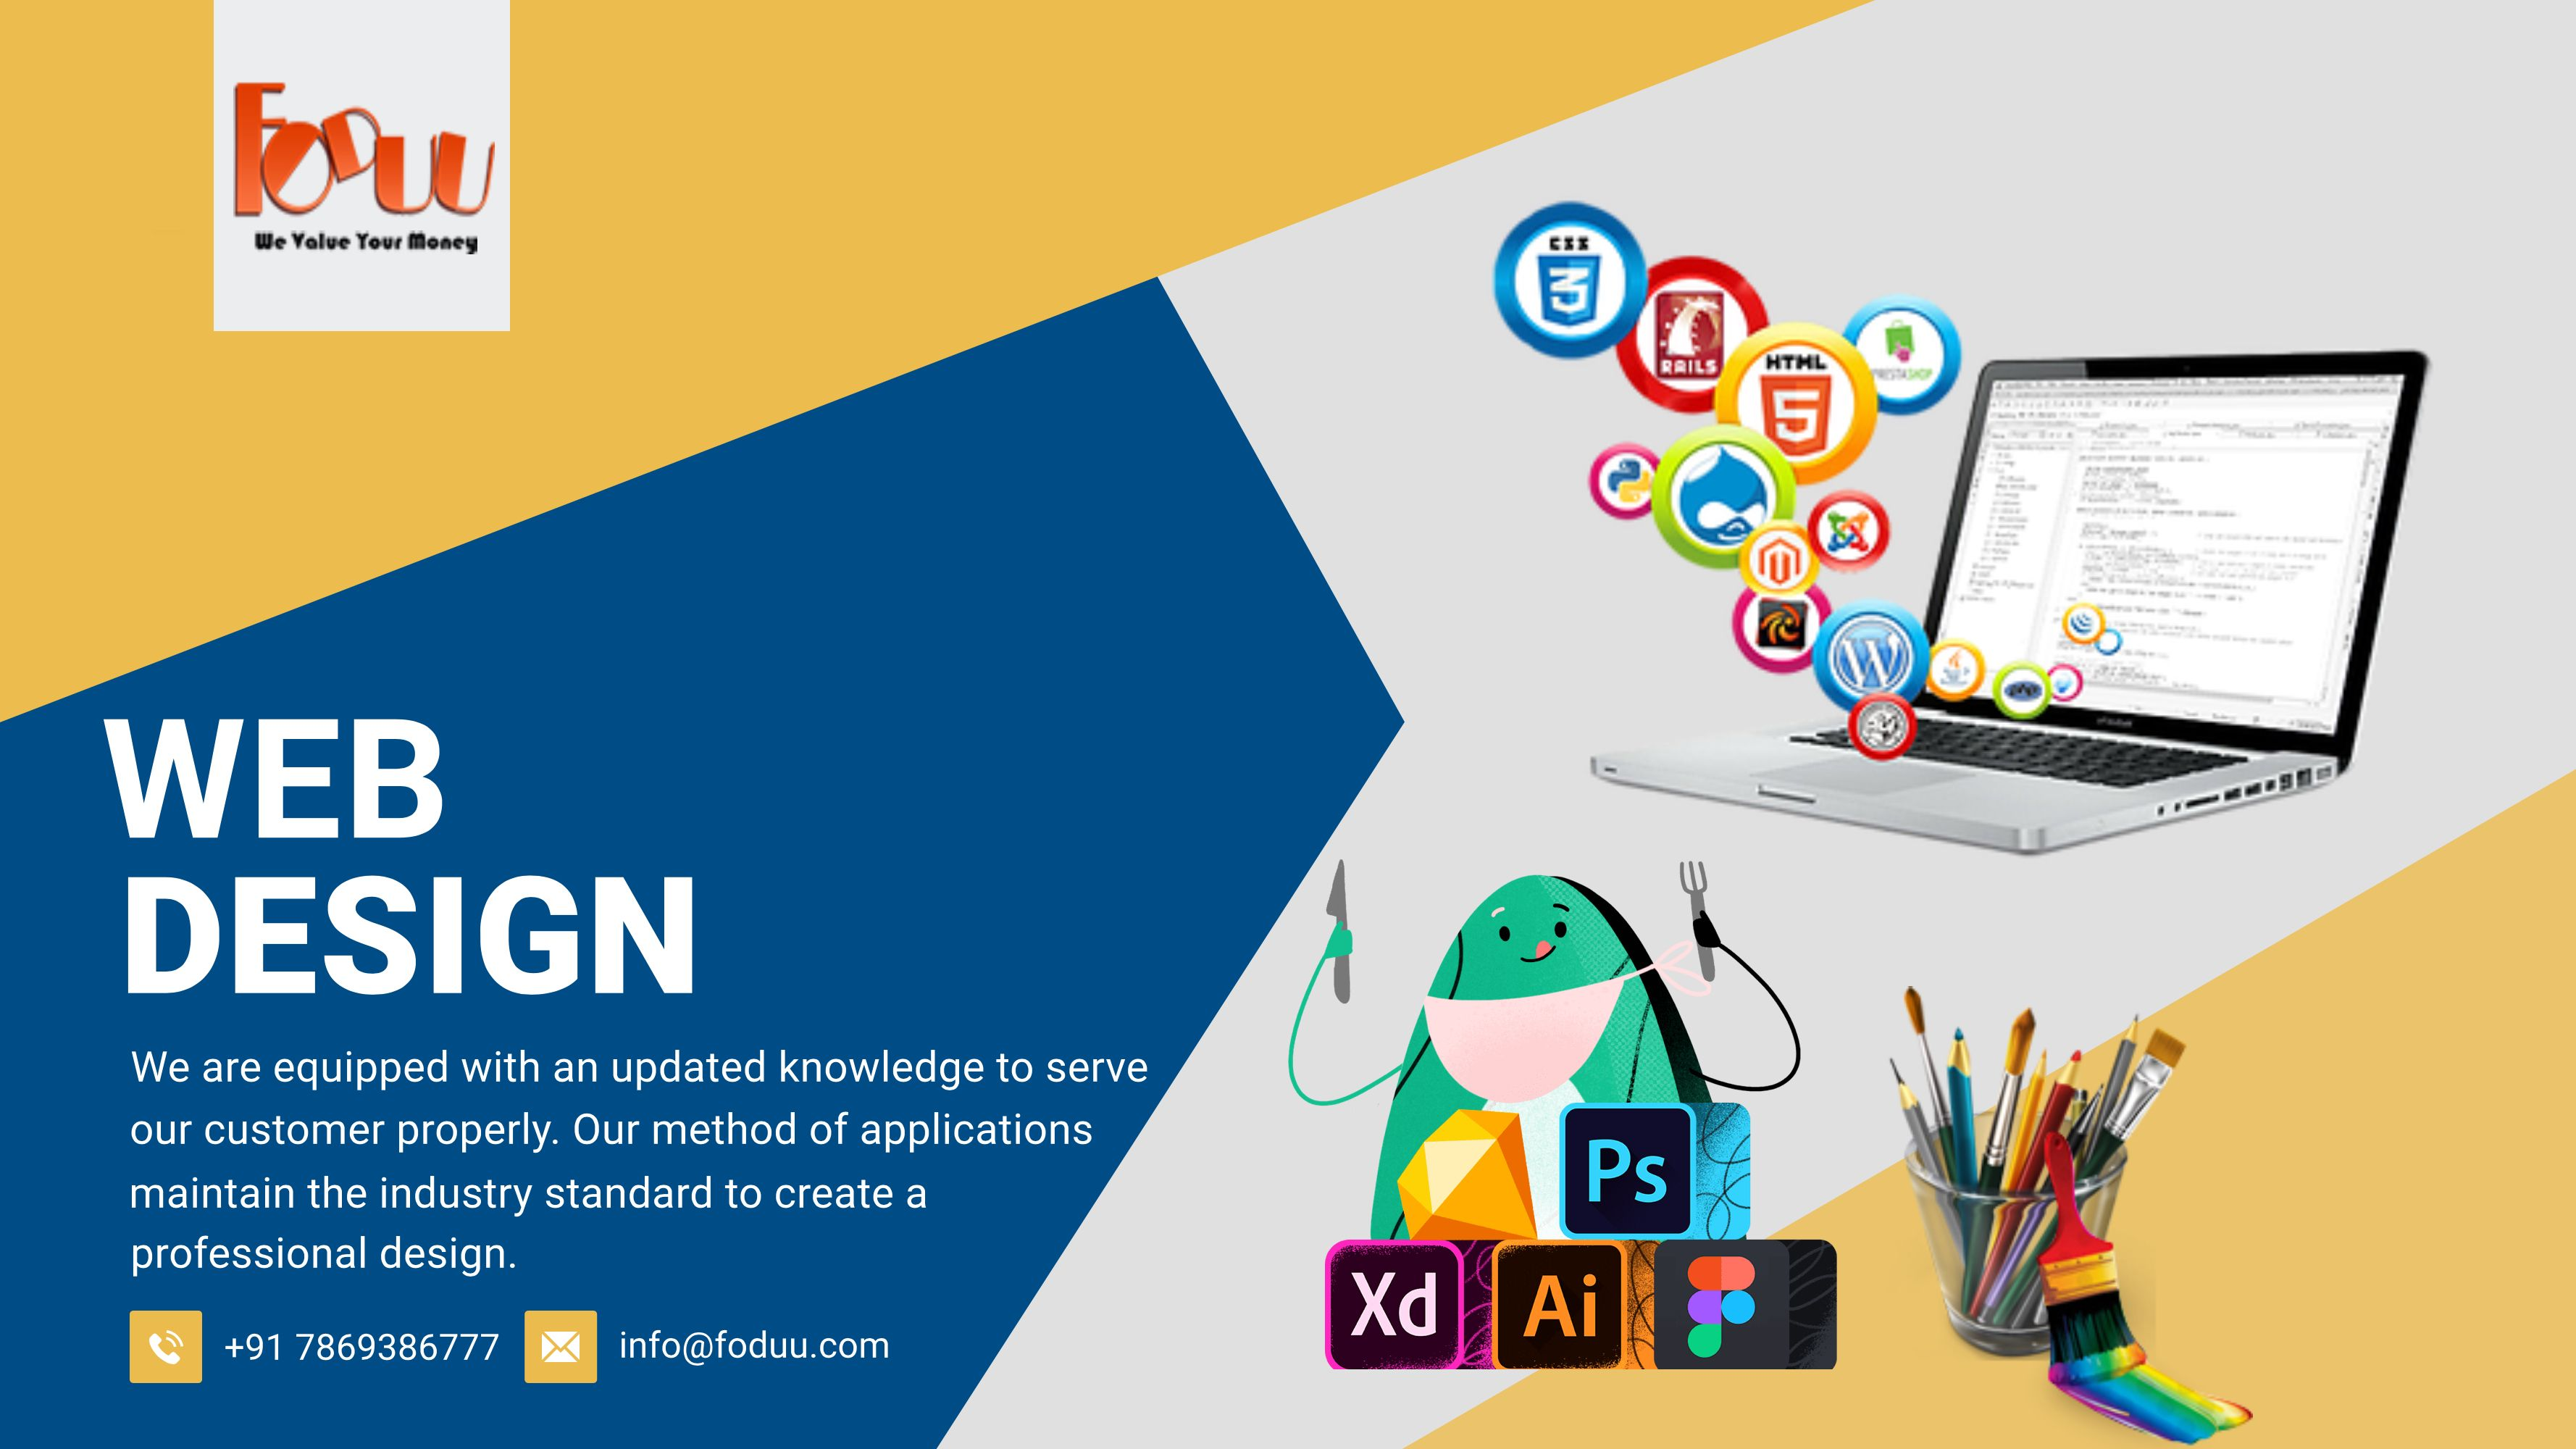 Web Design Development Company In India Web Development Design Web Design Design Development